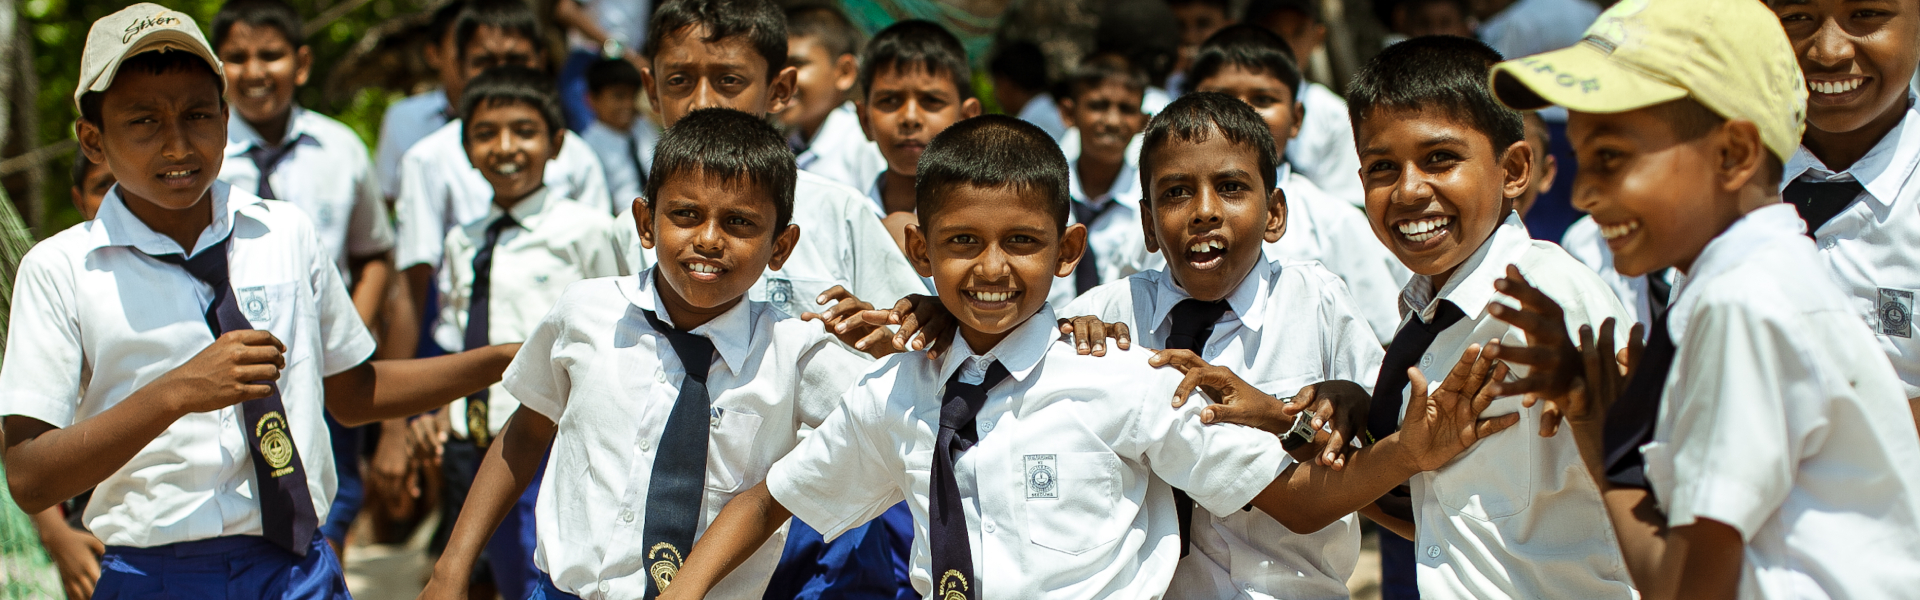 School trips from Delhi